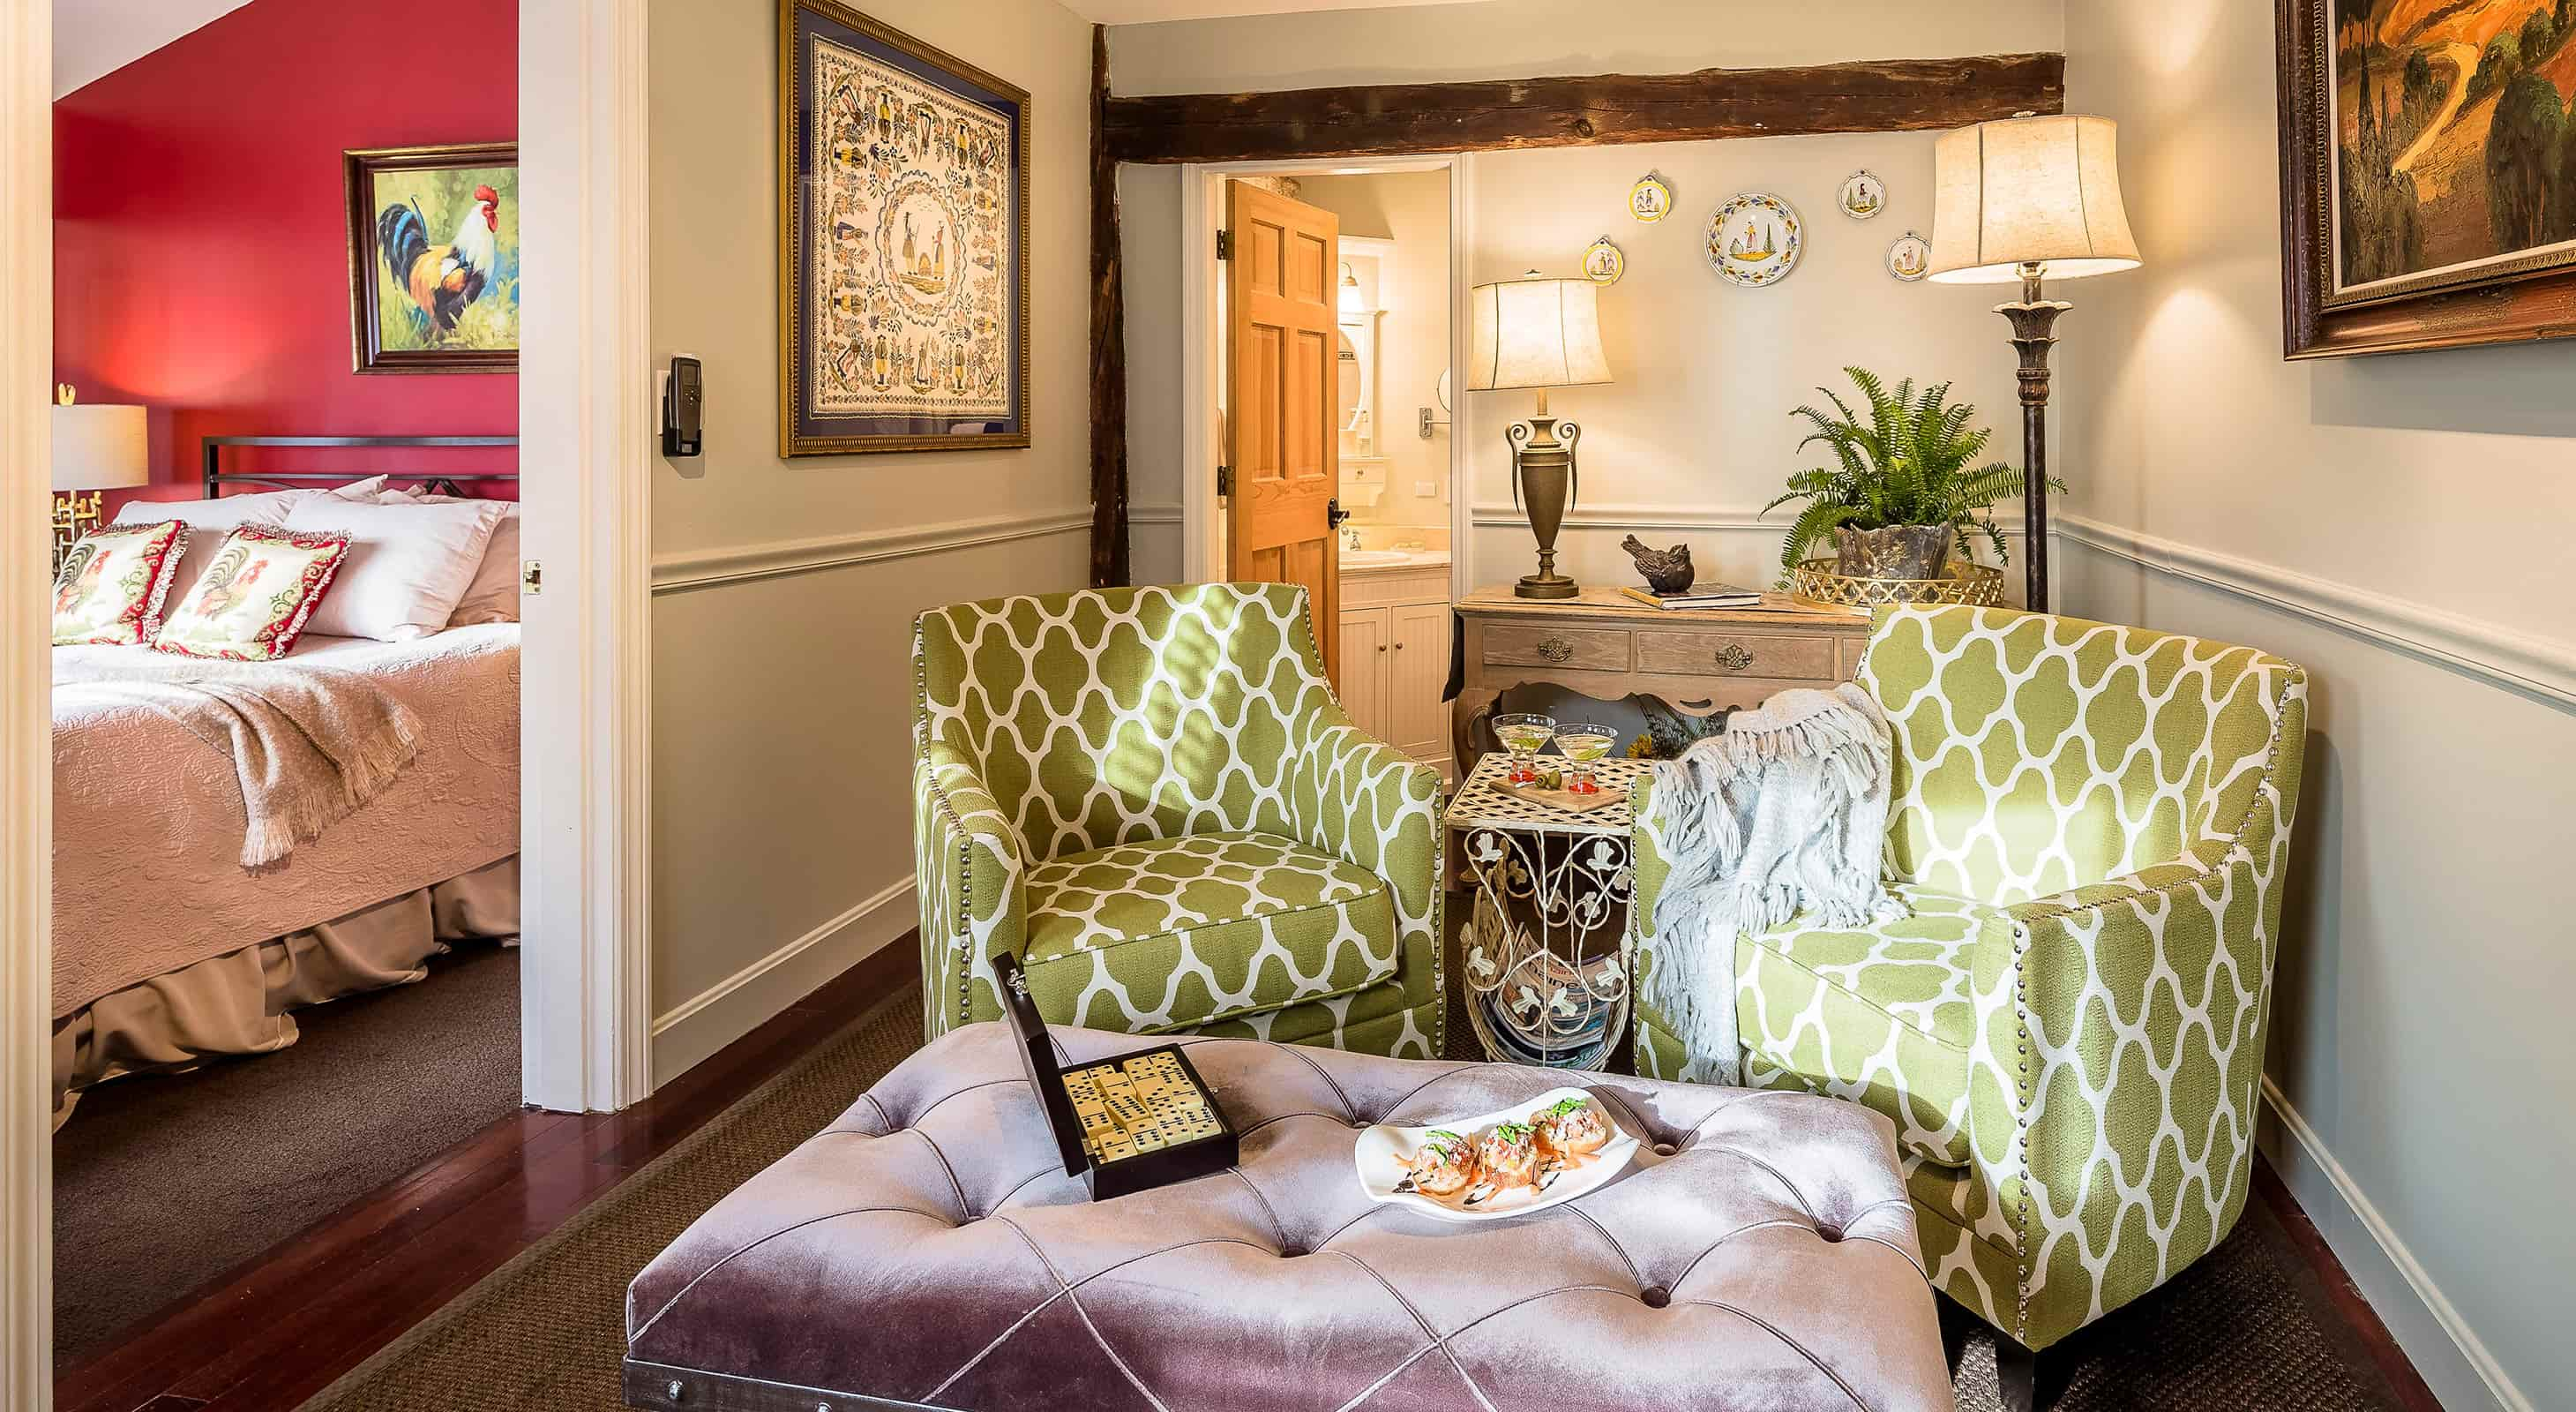 Green and white chairs with lavender ottoman in a sitting room, with bedroom off to side